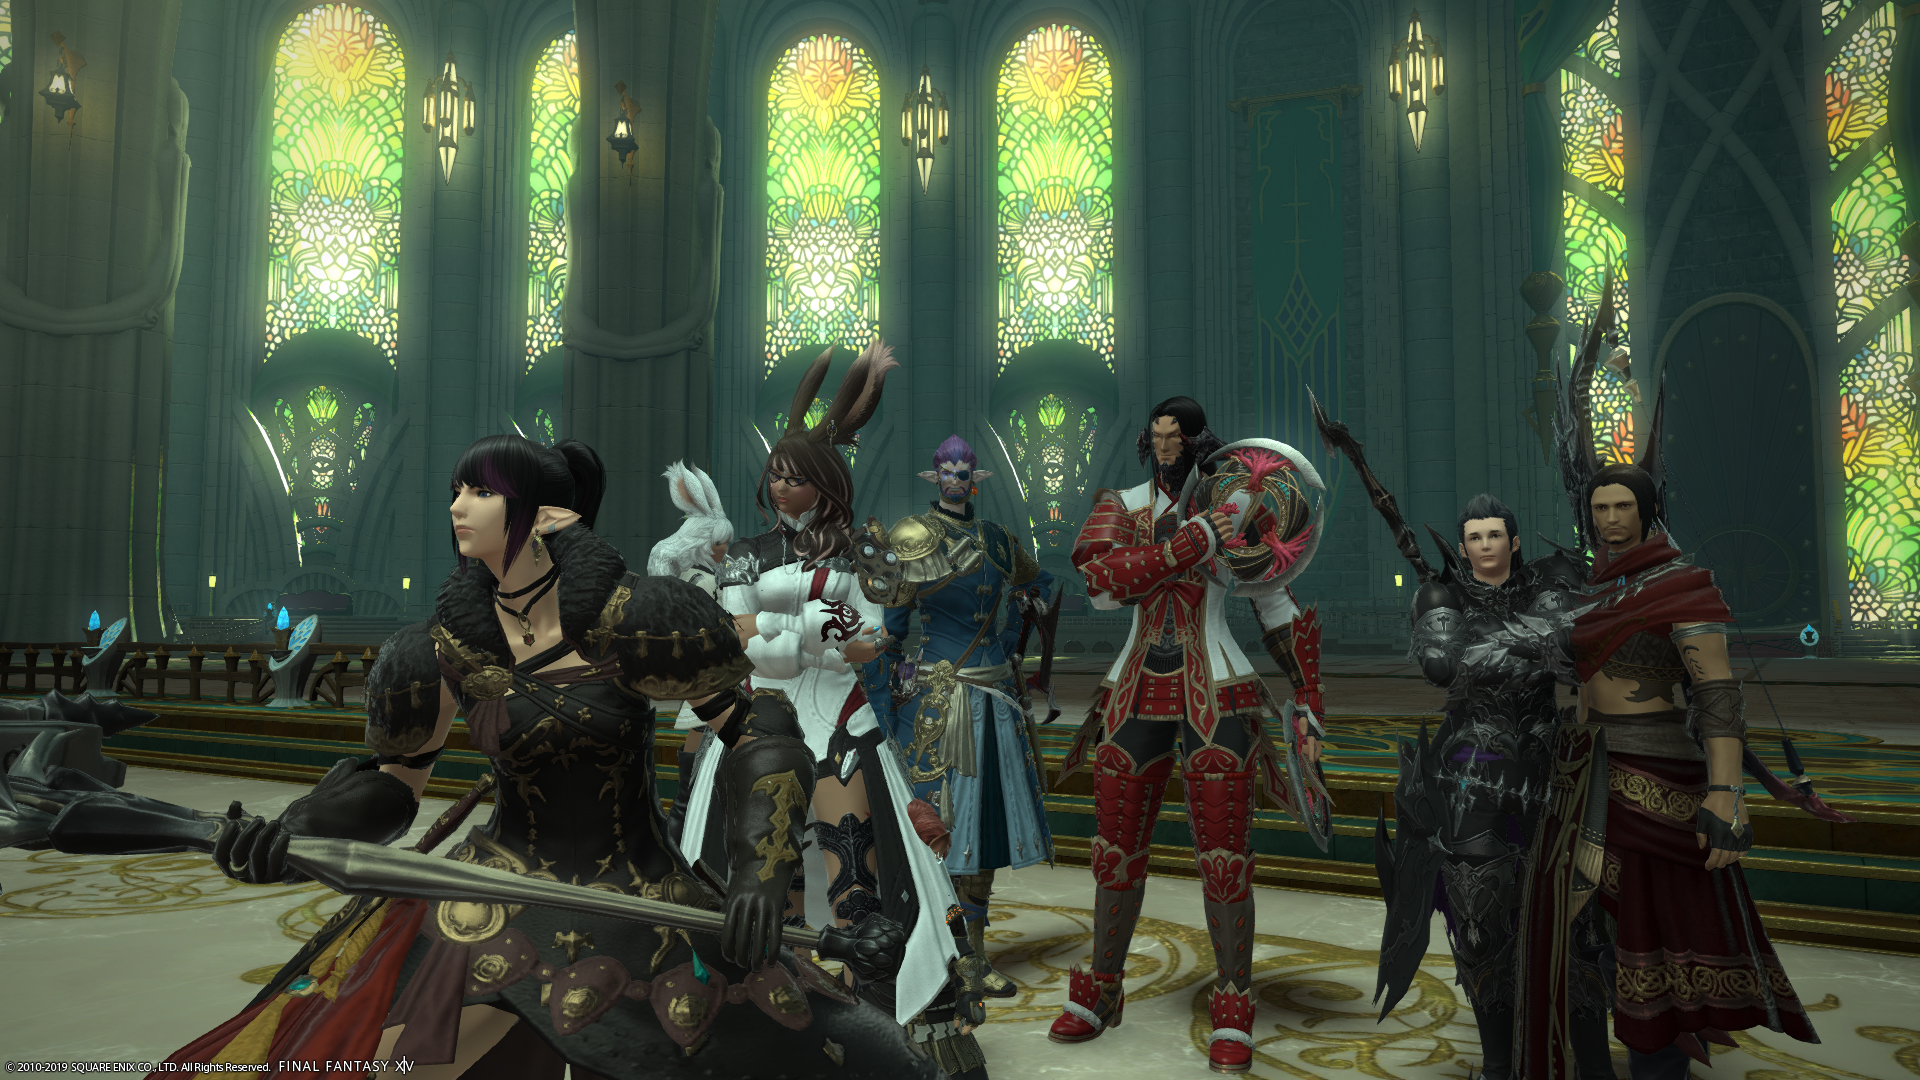 FC Titania Ex learning party, waiting to go